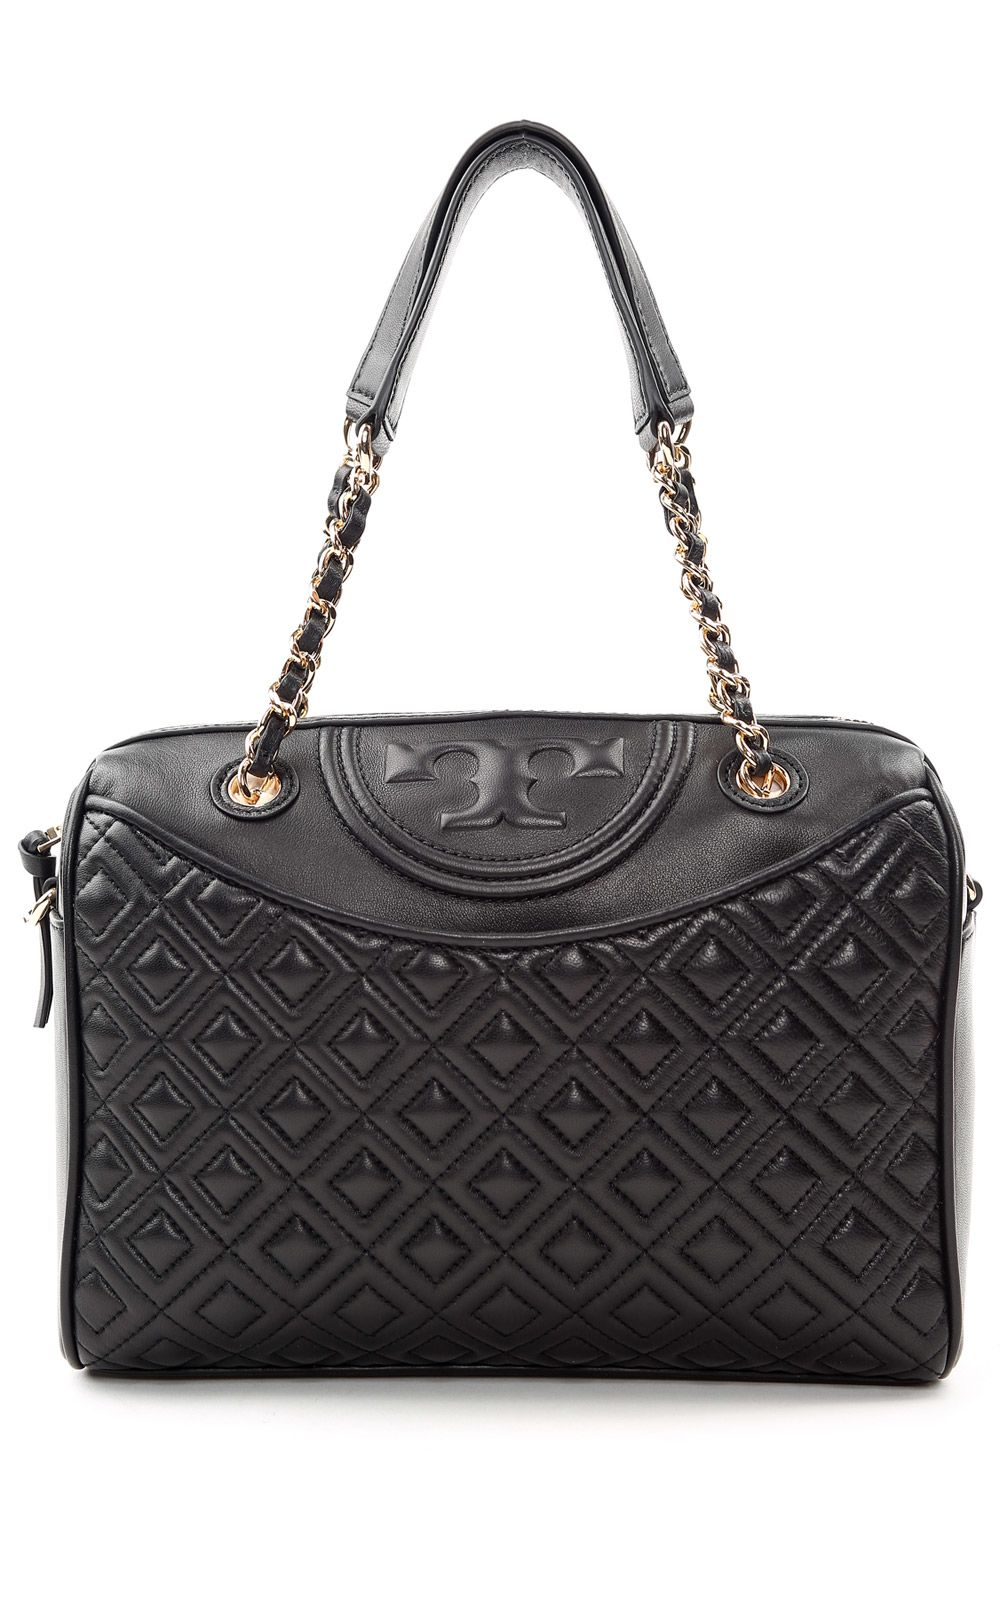 Tory Burch Tory Burch Fleming Duffel Quilted Leather